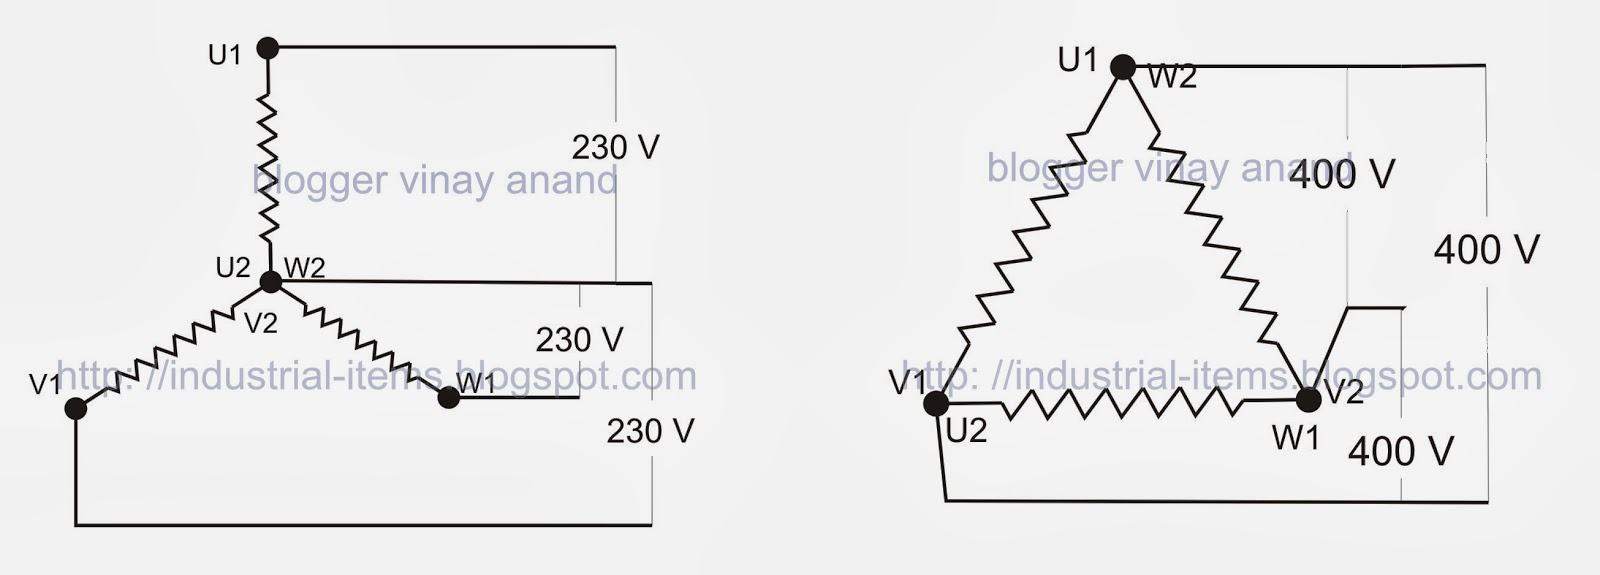 star vs delta wiring schematic wiring diagrams start of a electrical circuit schematic delta wiring schematic [ 1600 x 575 Pixel ]